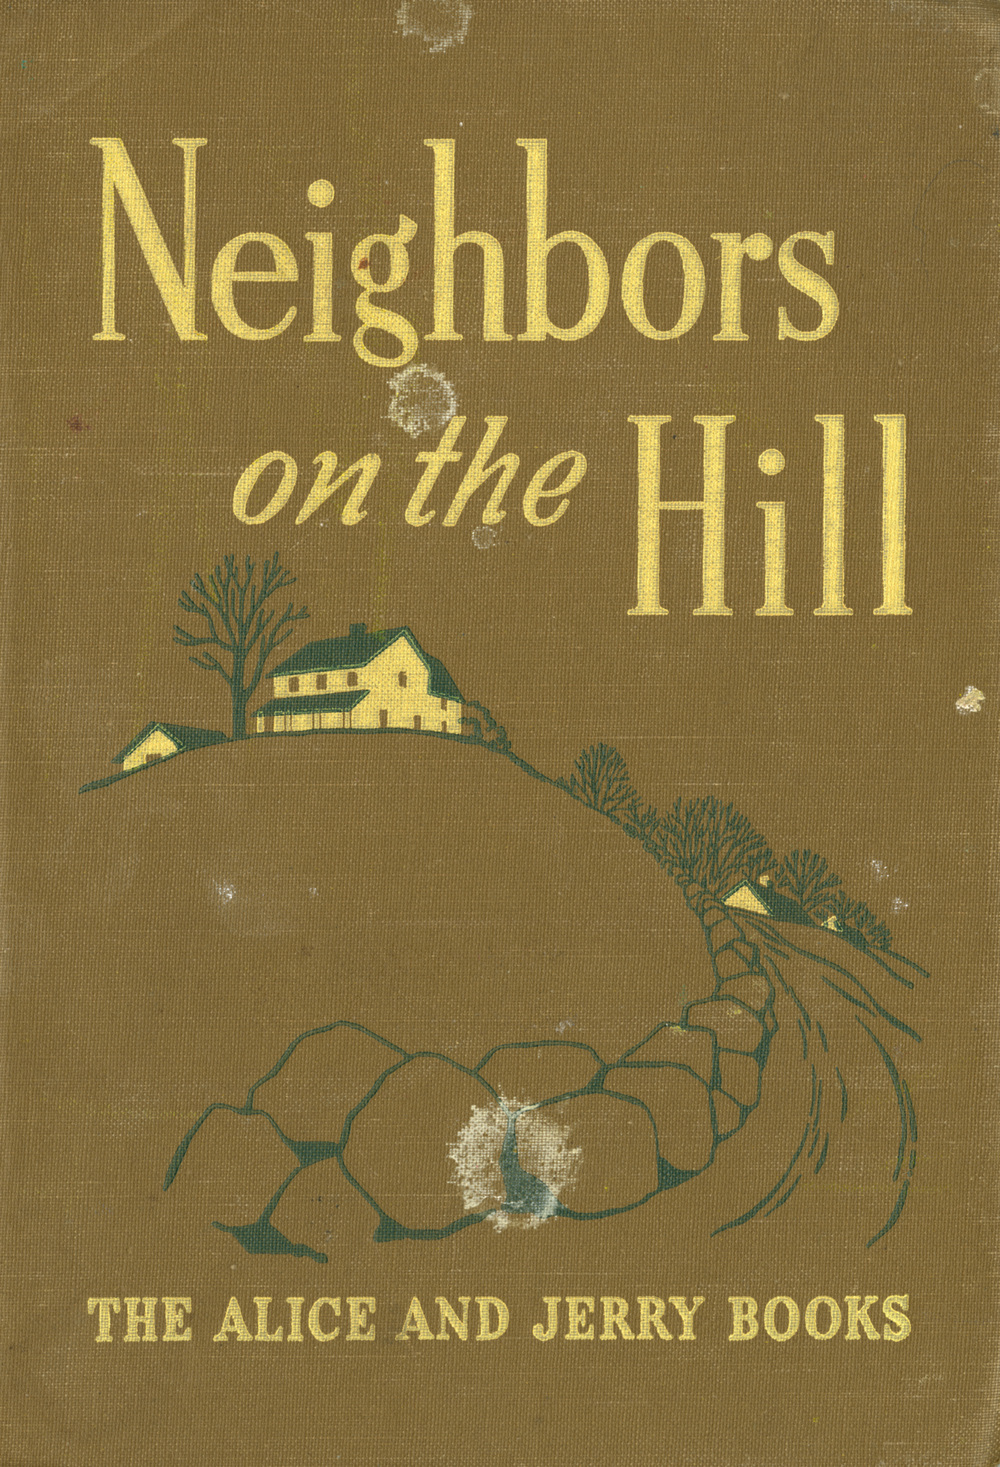 Neighbors on the Hill  book cover. Written by Marjorie Flack and Mabel O' Donnell. Published by Row, Peterson and Co, 1943.